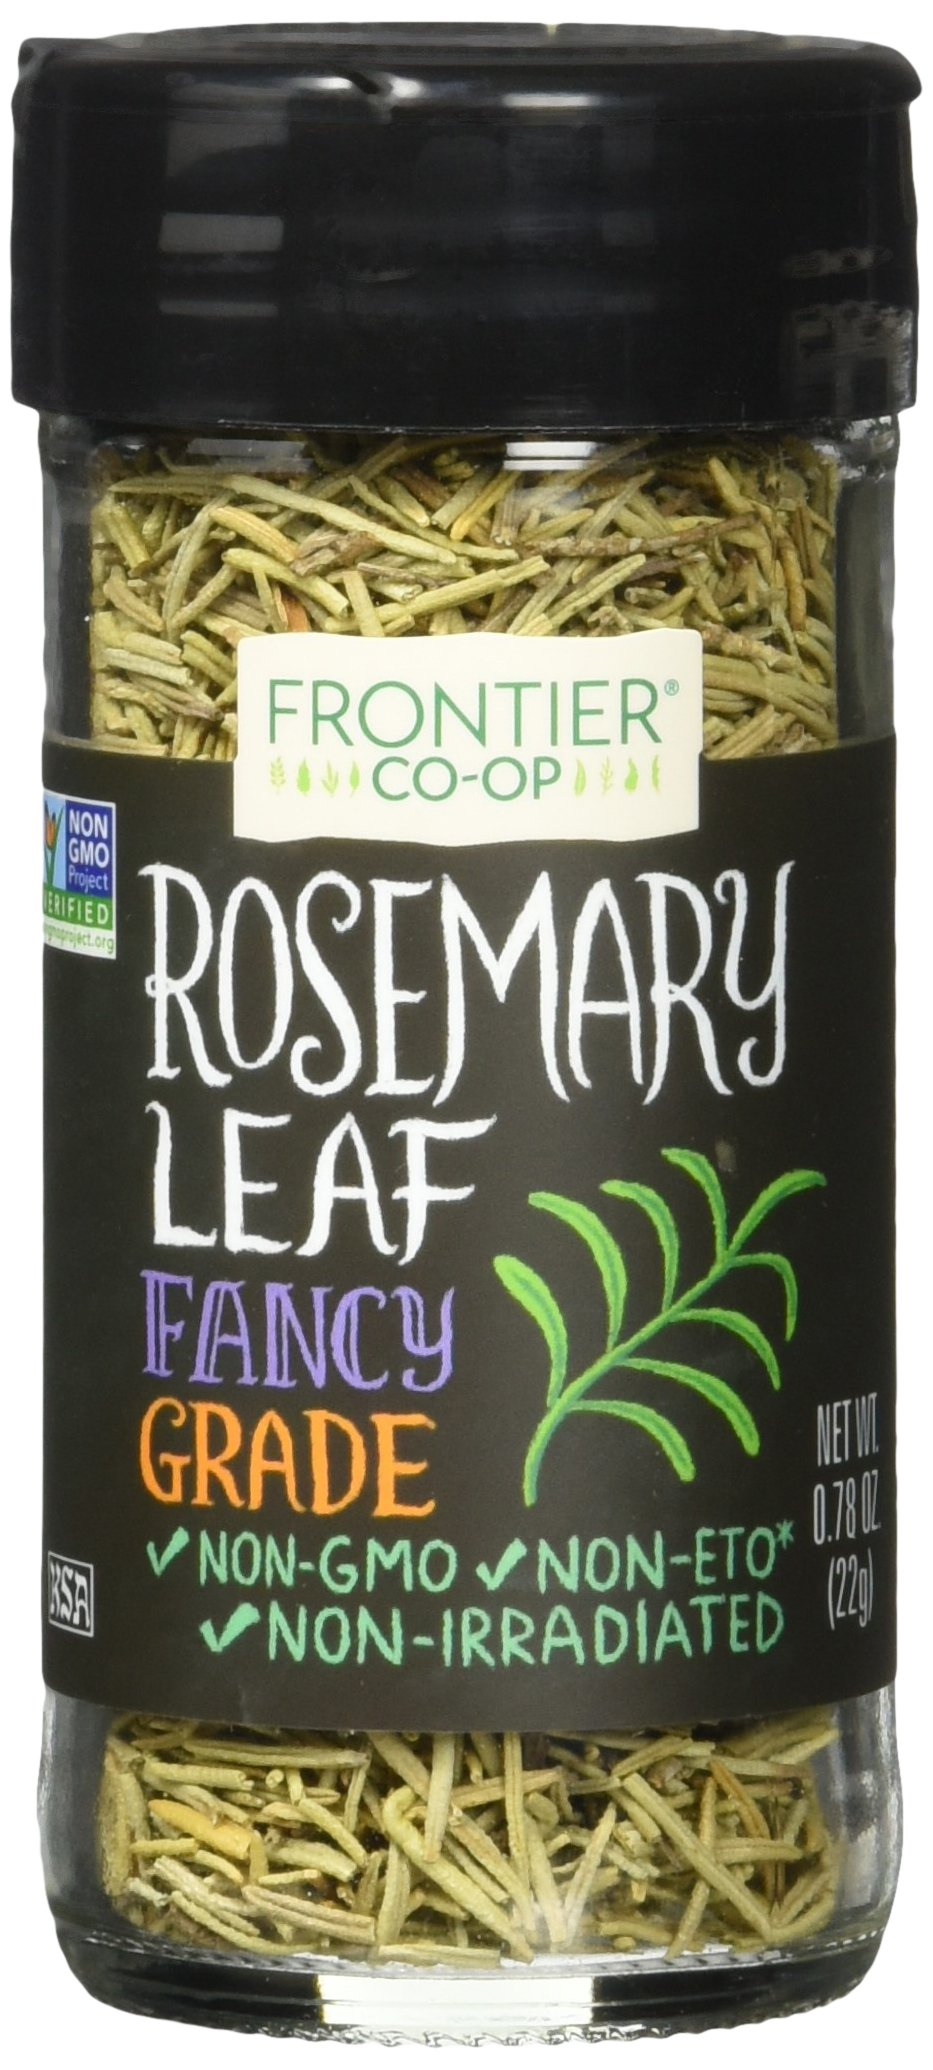 Frontier Rosemary Leaf, Whole, 0.78-Ounce Bottle (Pack of 6)